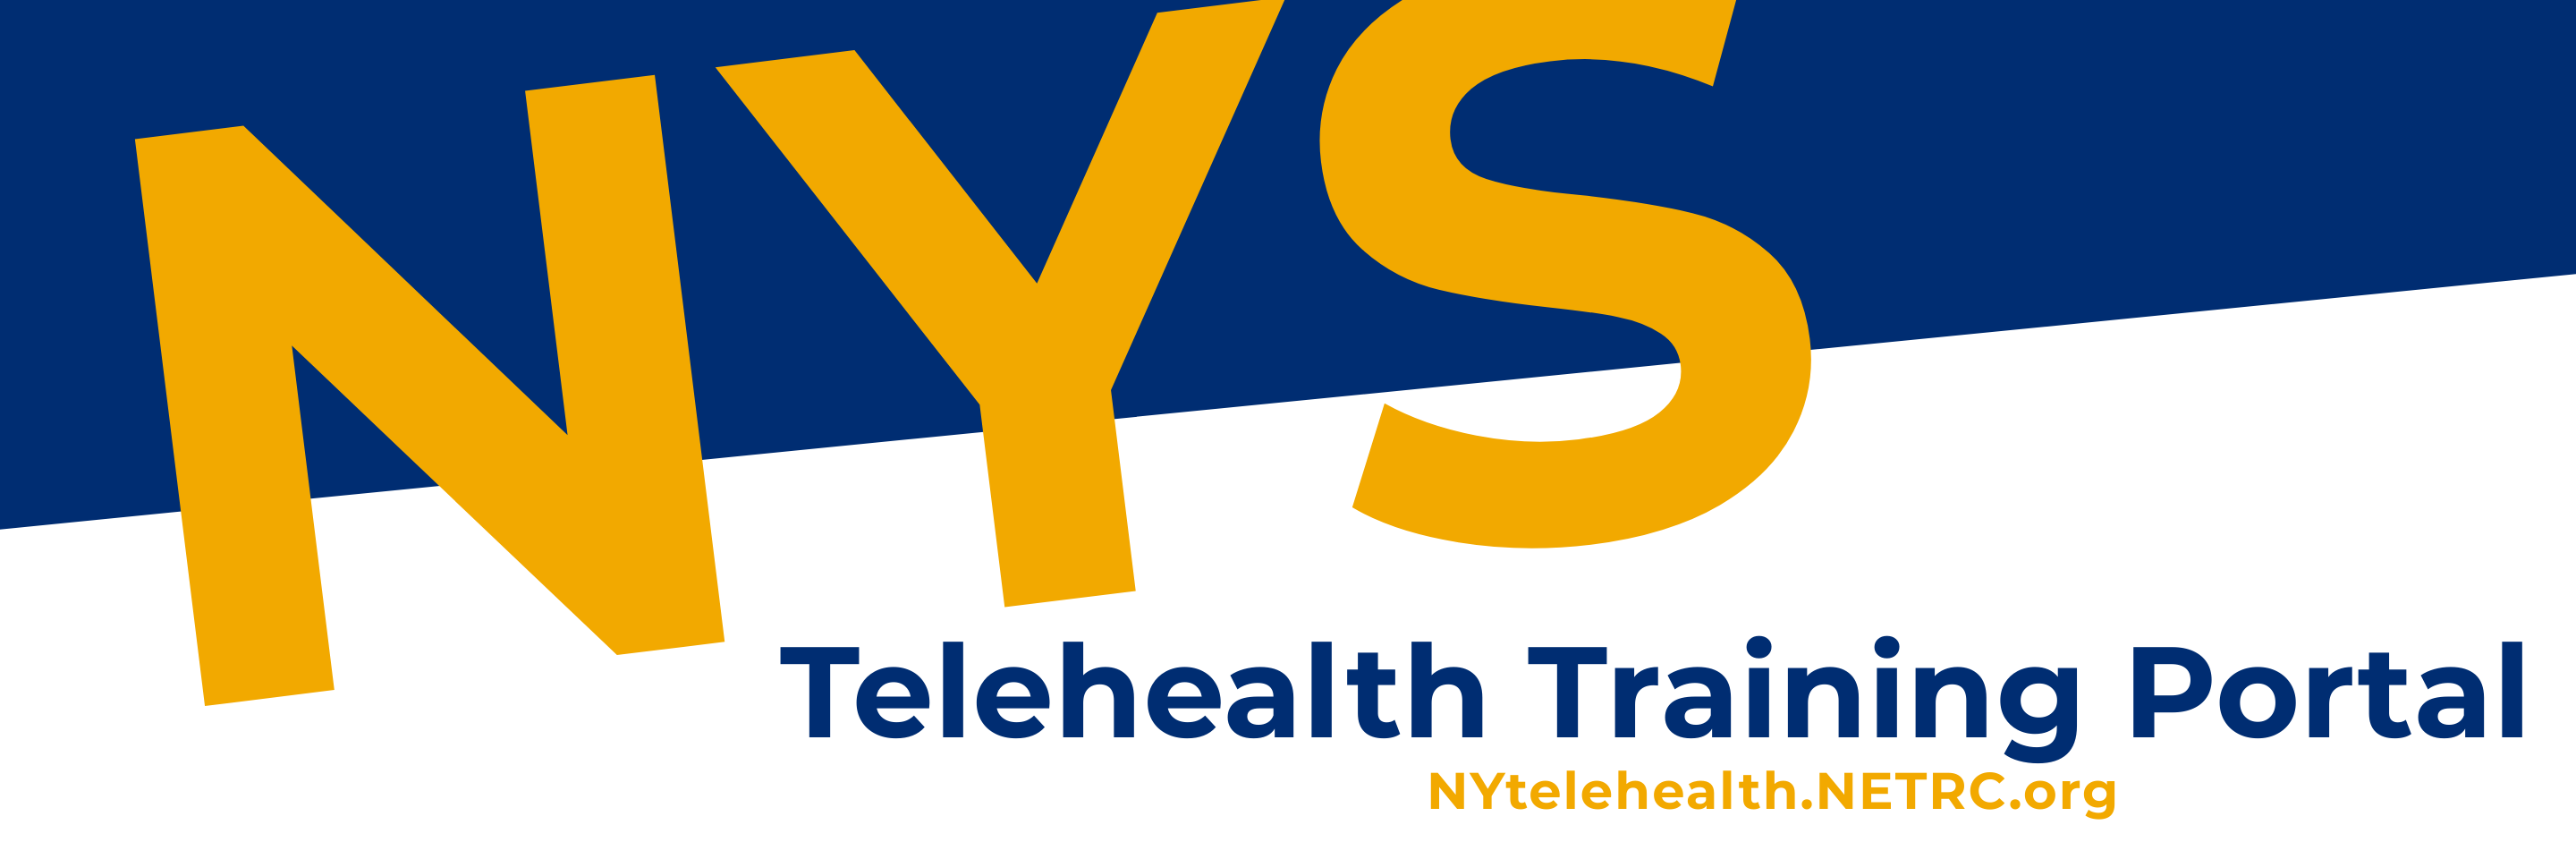 New York State Telehealth Training Portal